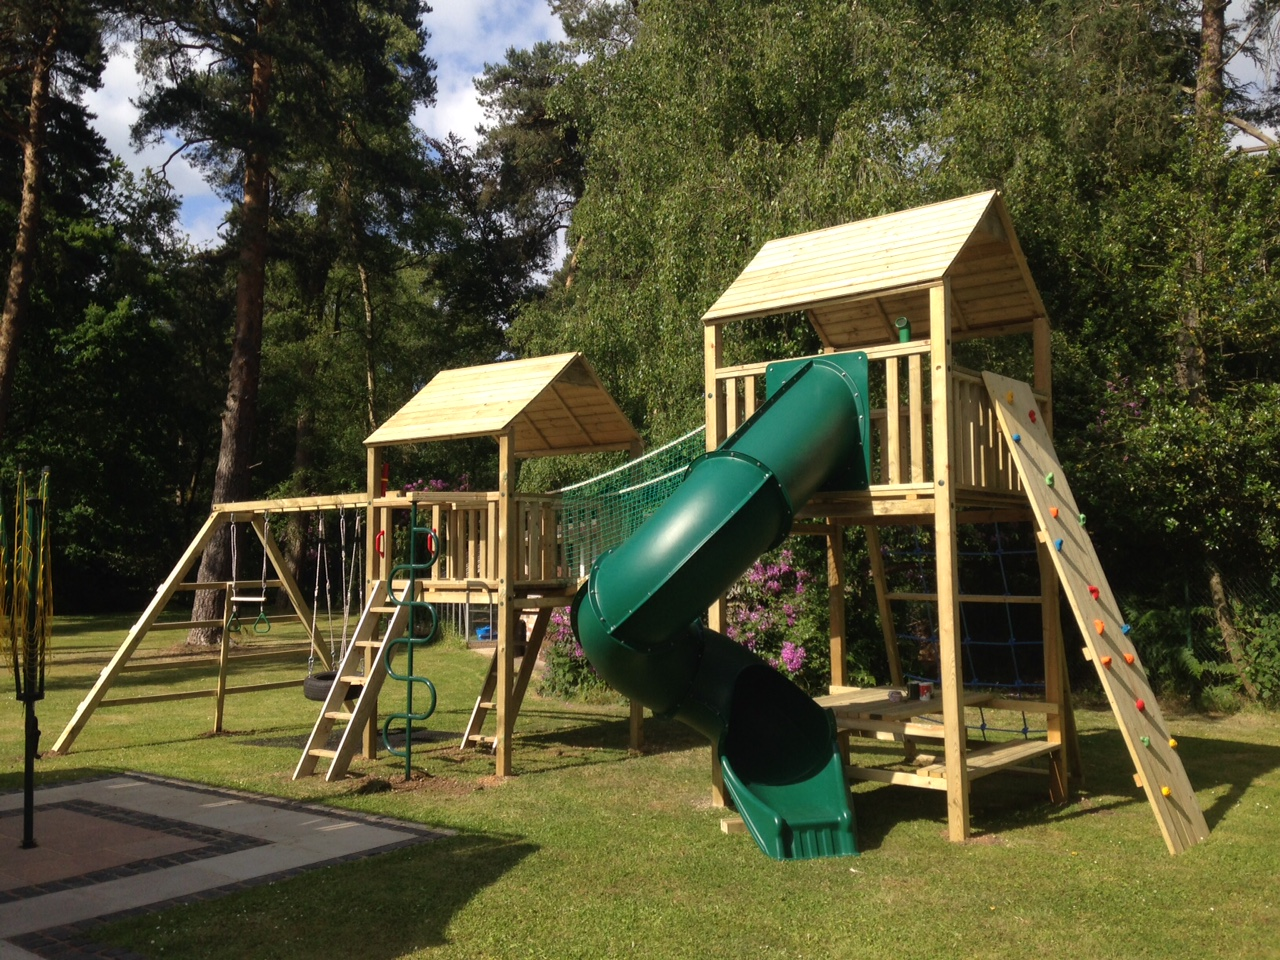 Double Tower Tube Slide with Monkey Bar Swing Set in Squares